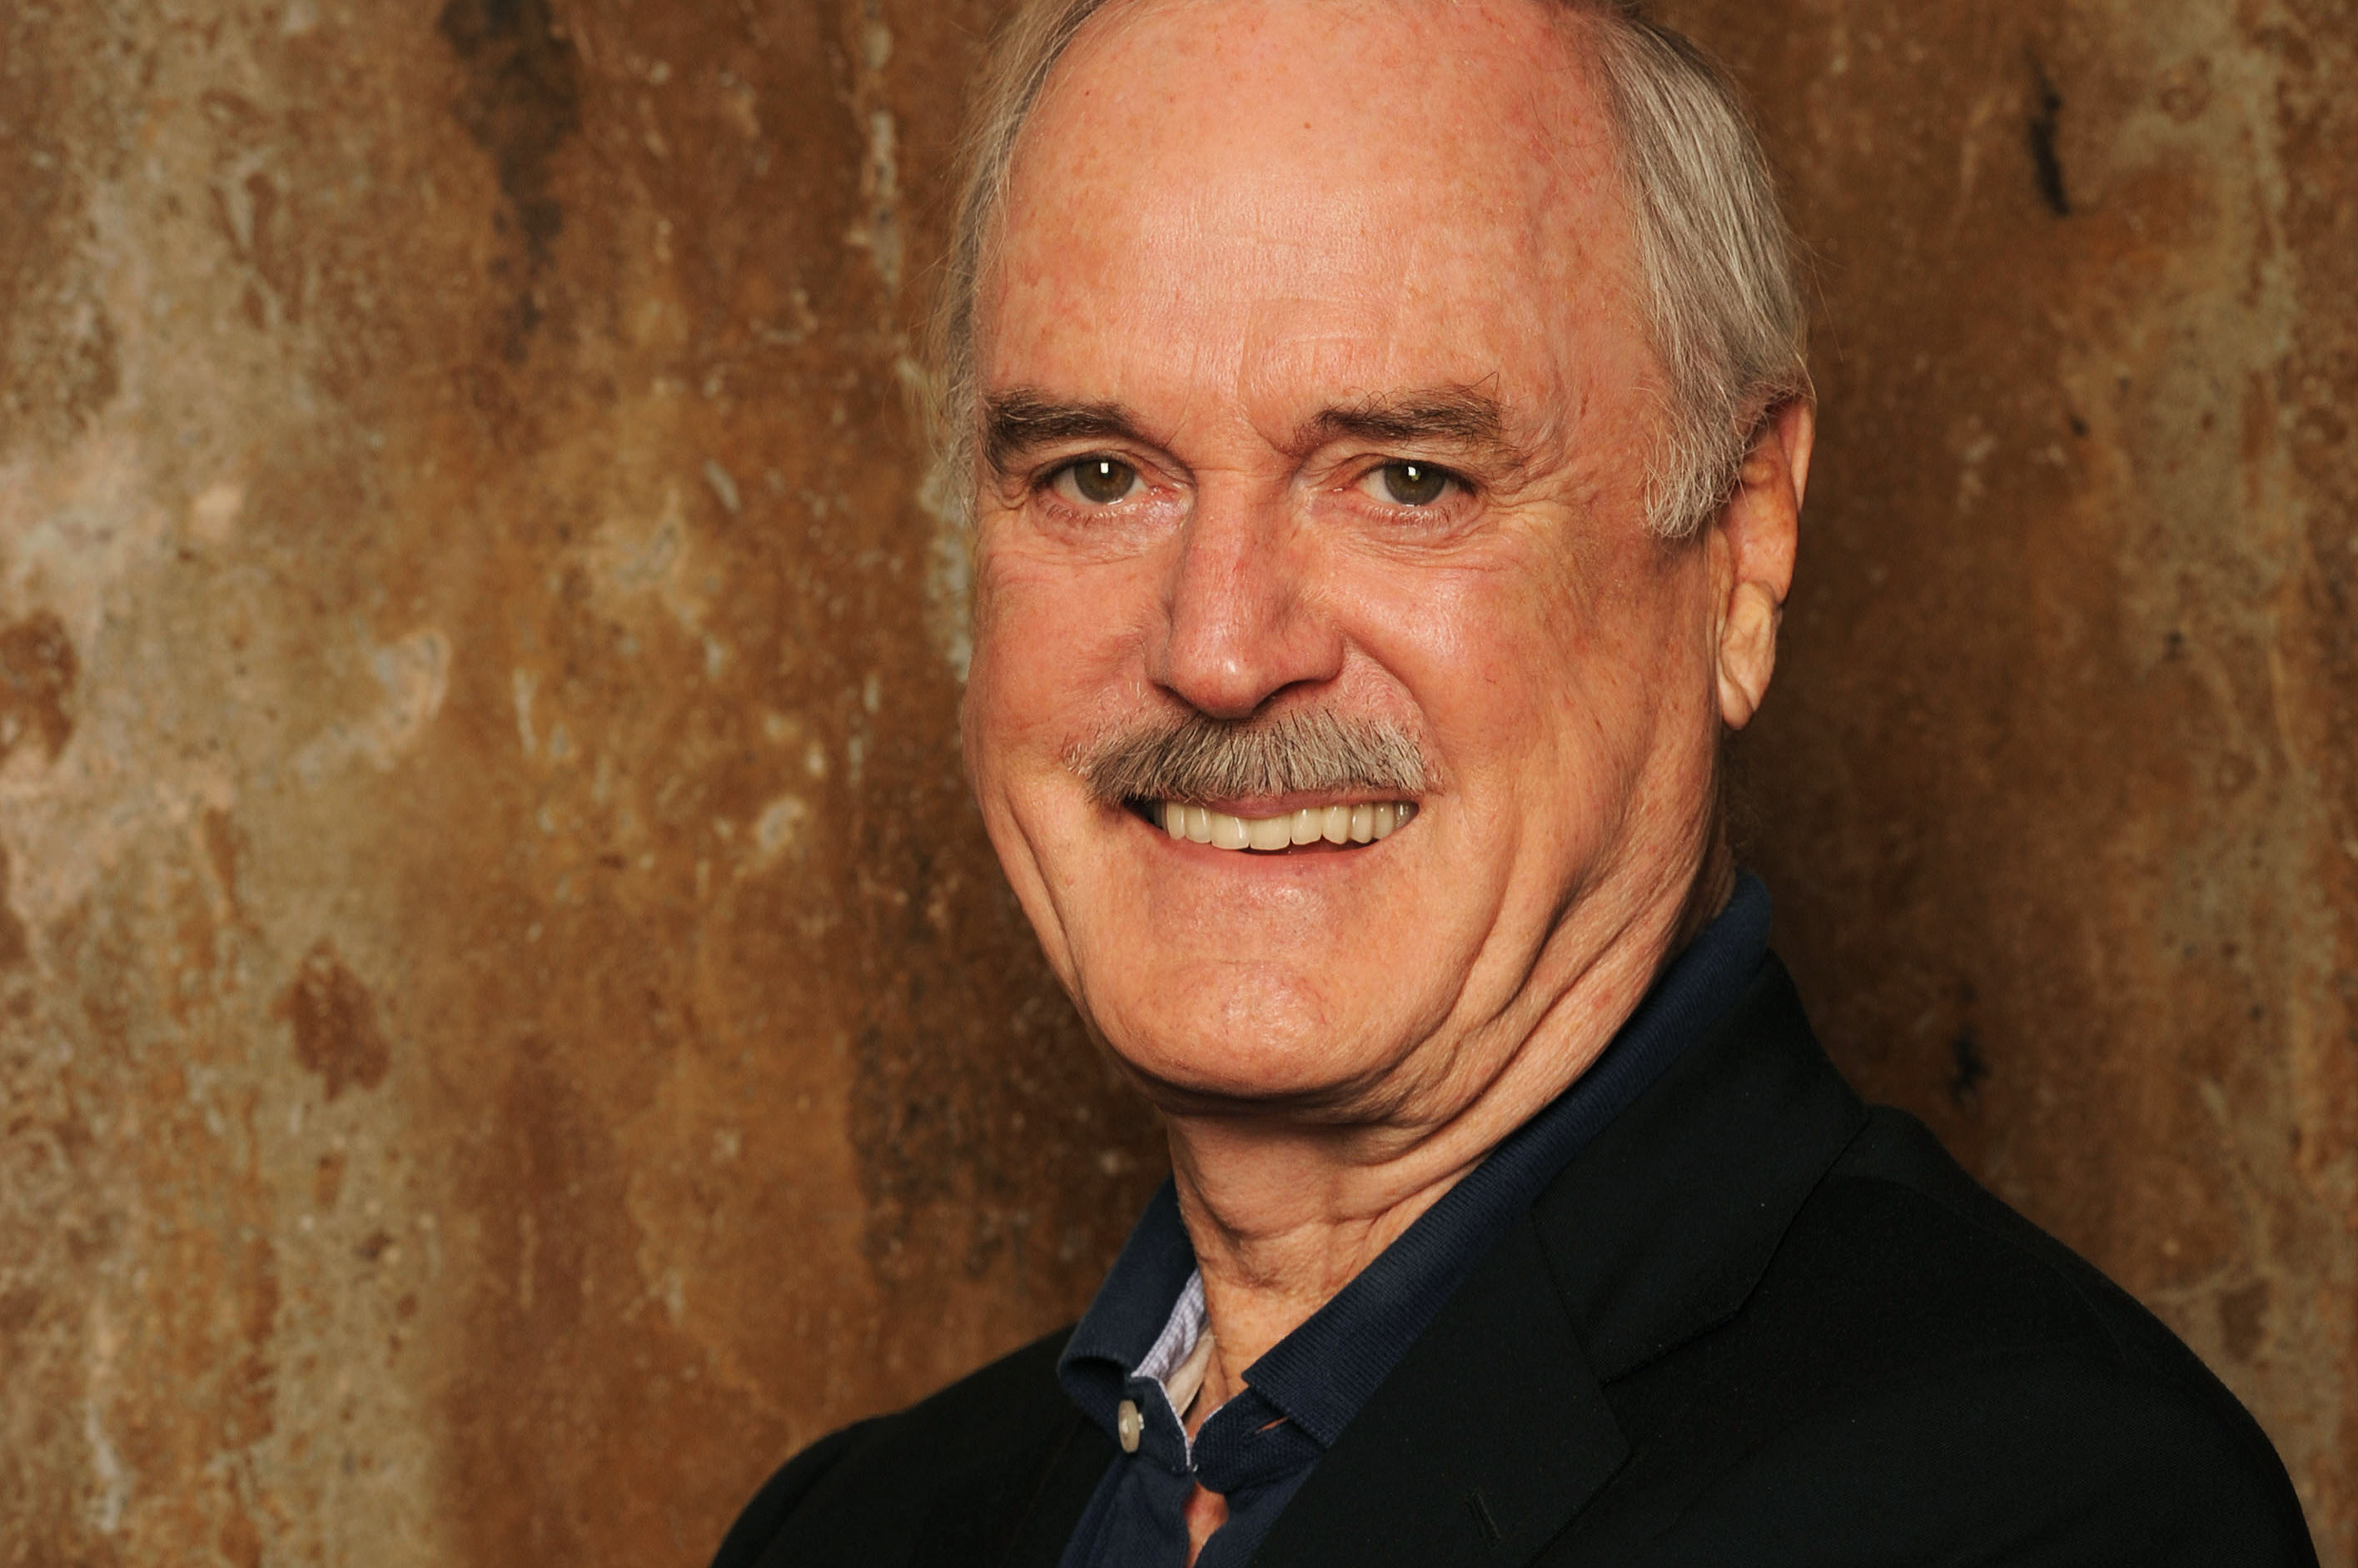 Cleese high res headshot adj rgb zen34m